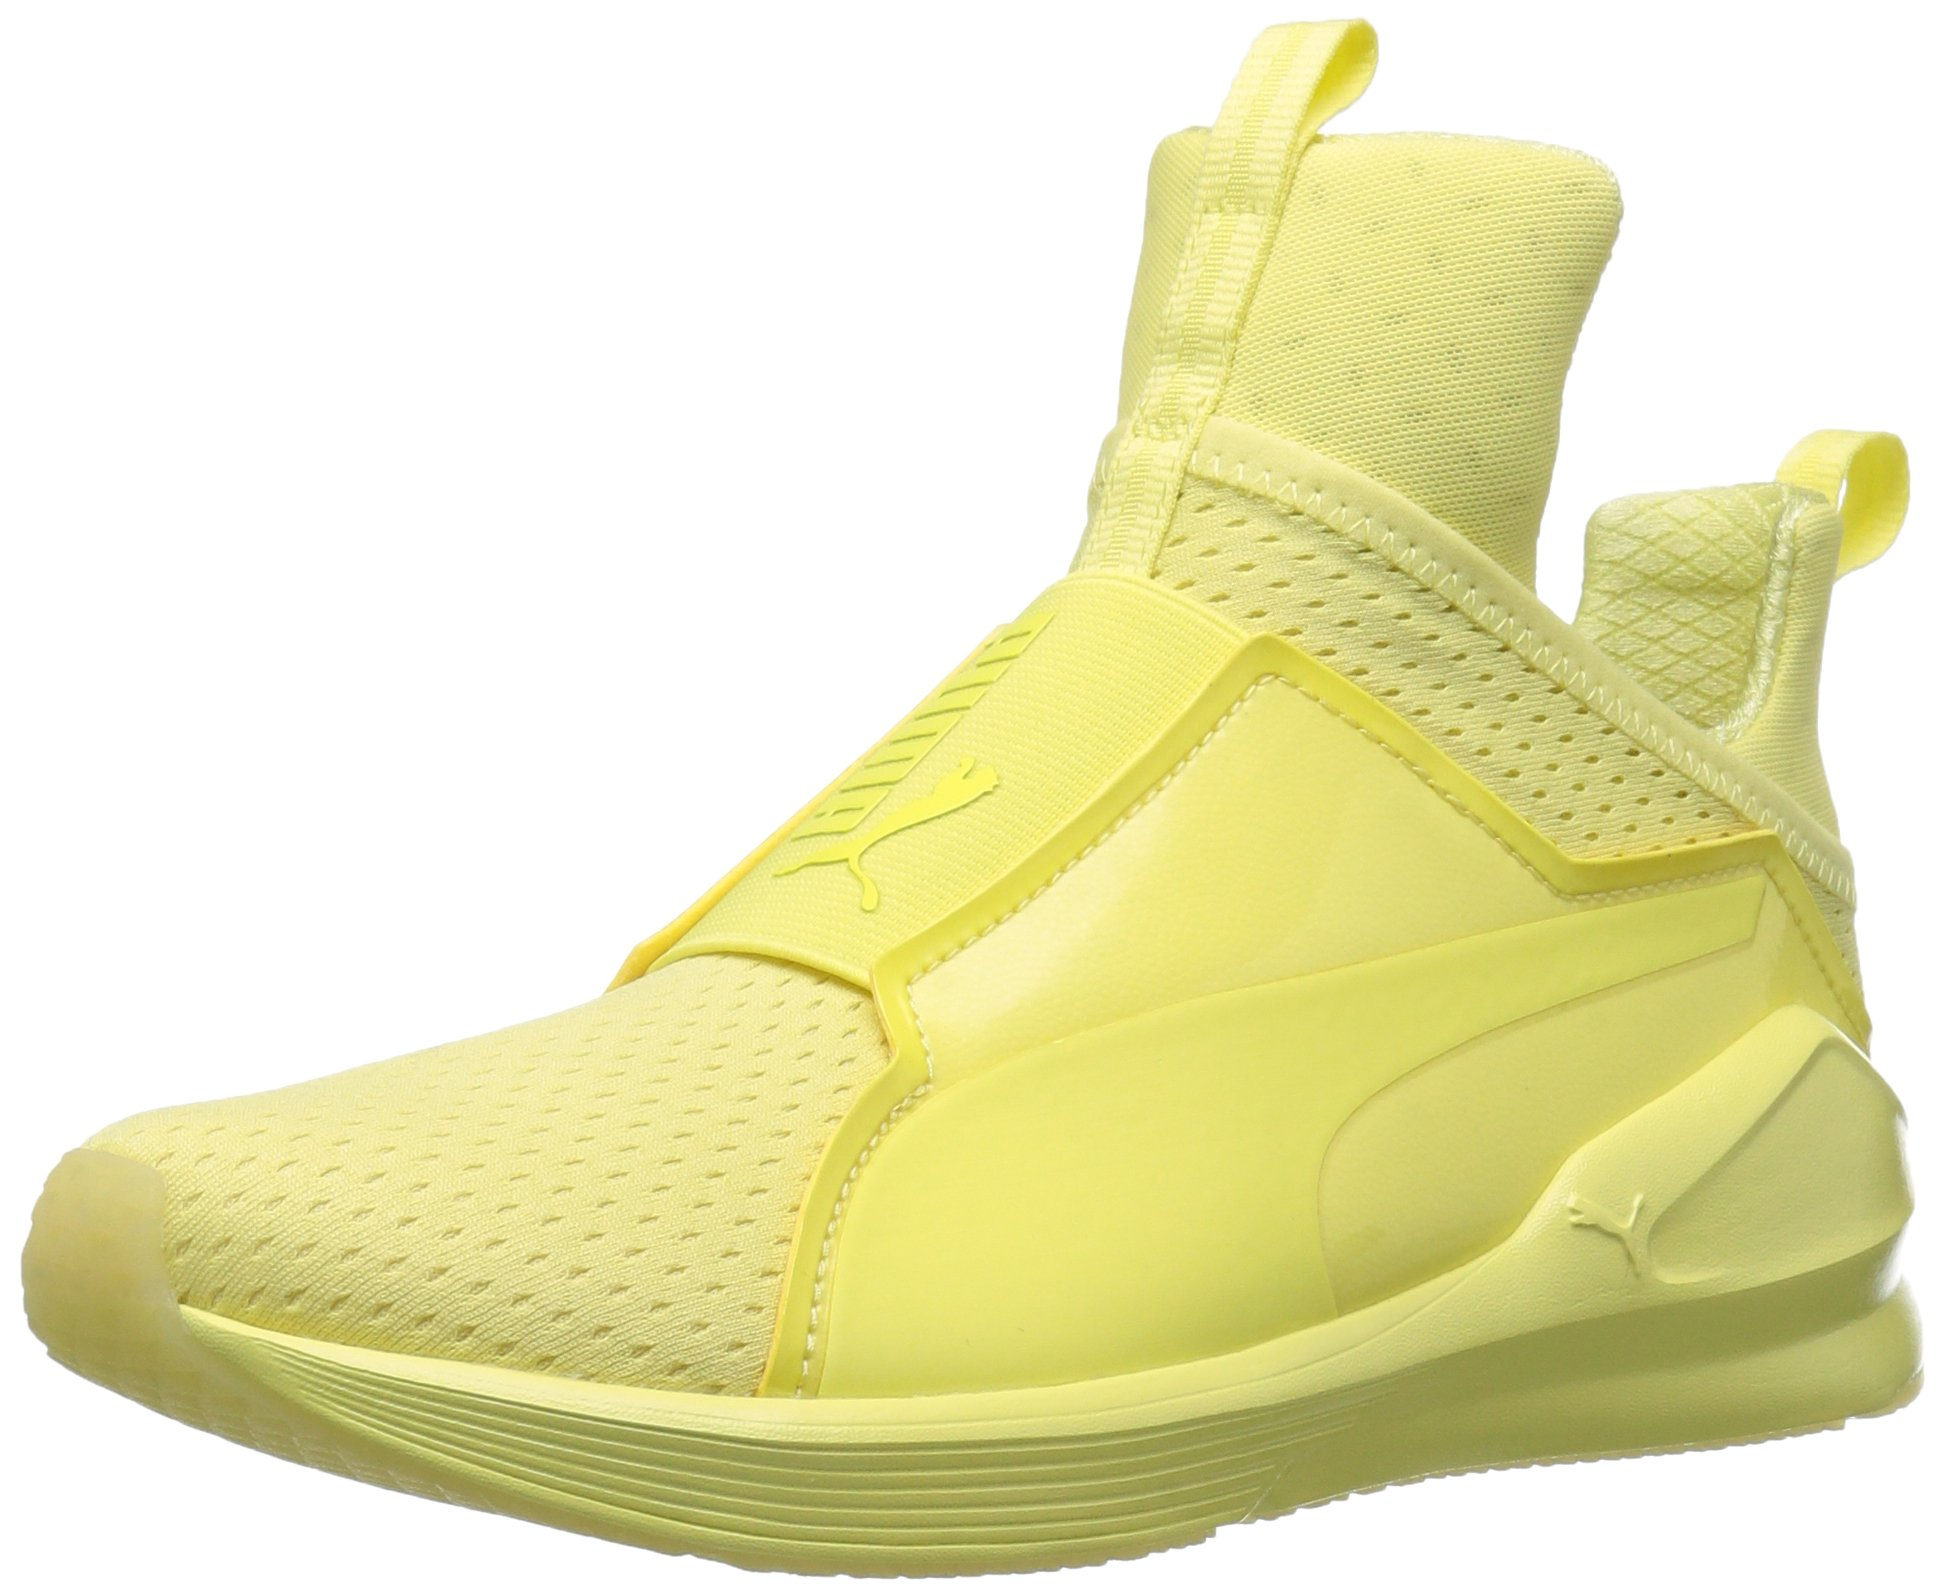 PUMA Women's Fierce Bright Mesh Cross-Trainer Shoe, Elfin Yellow, 10 M US